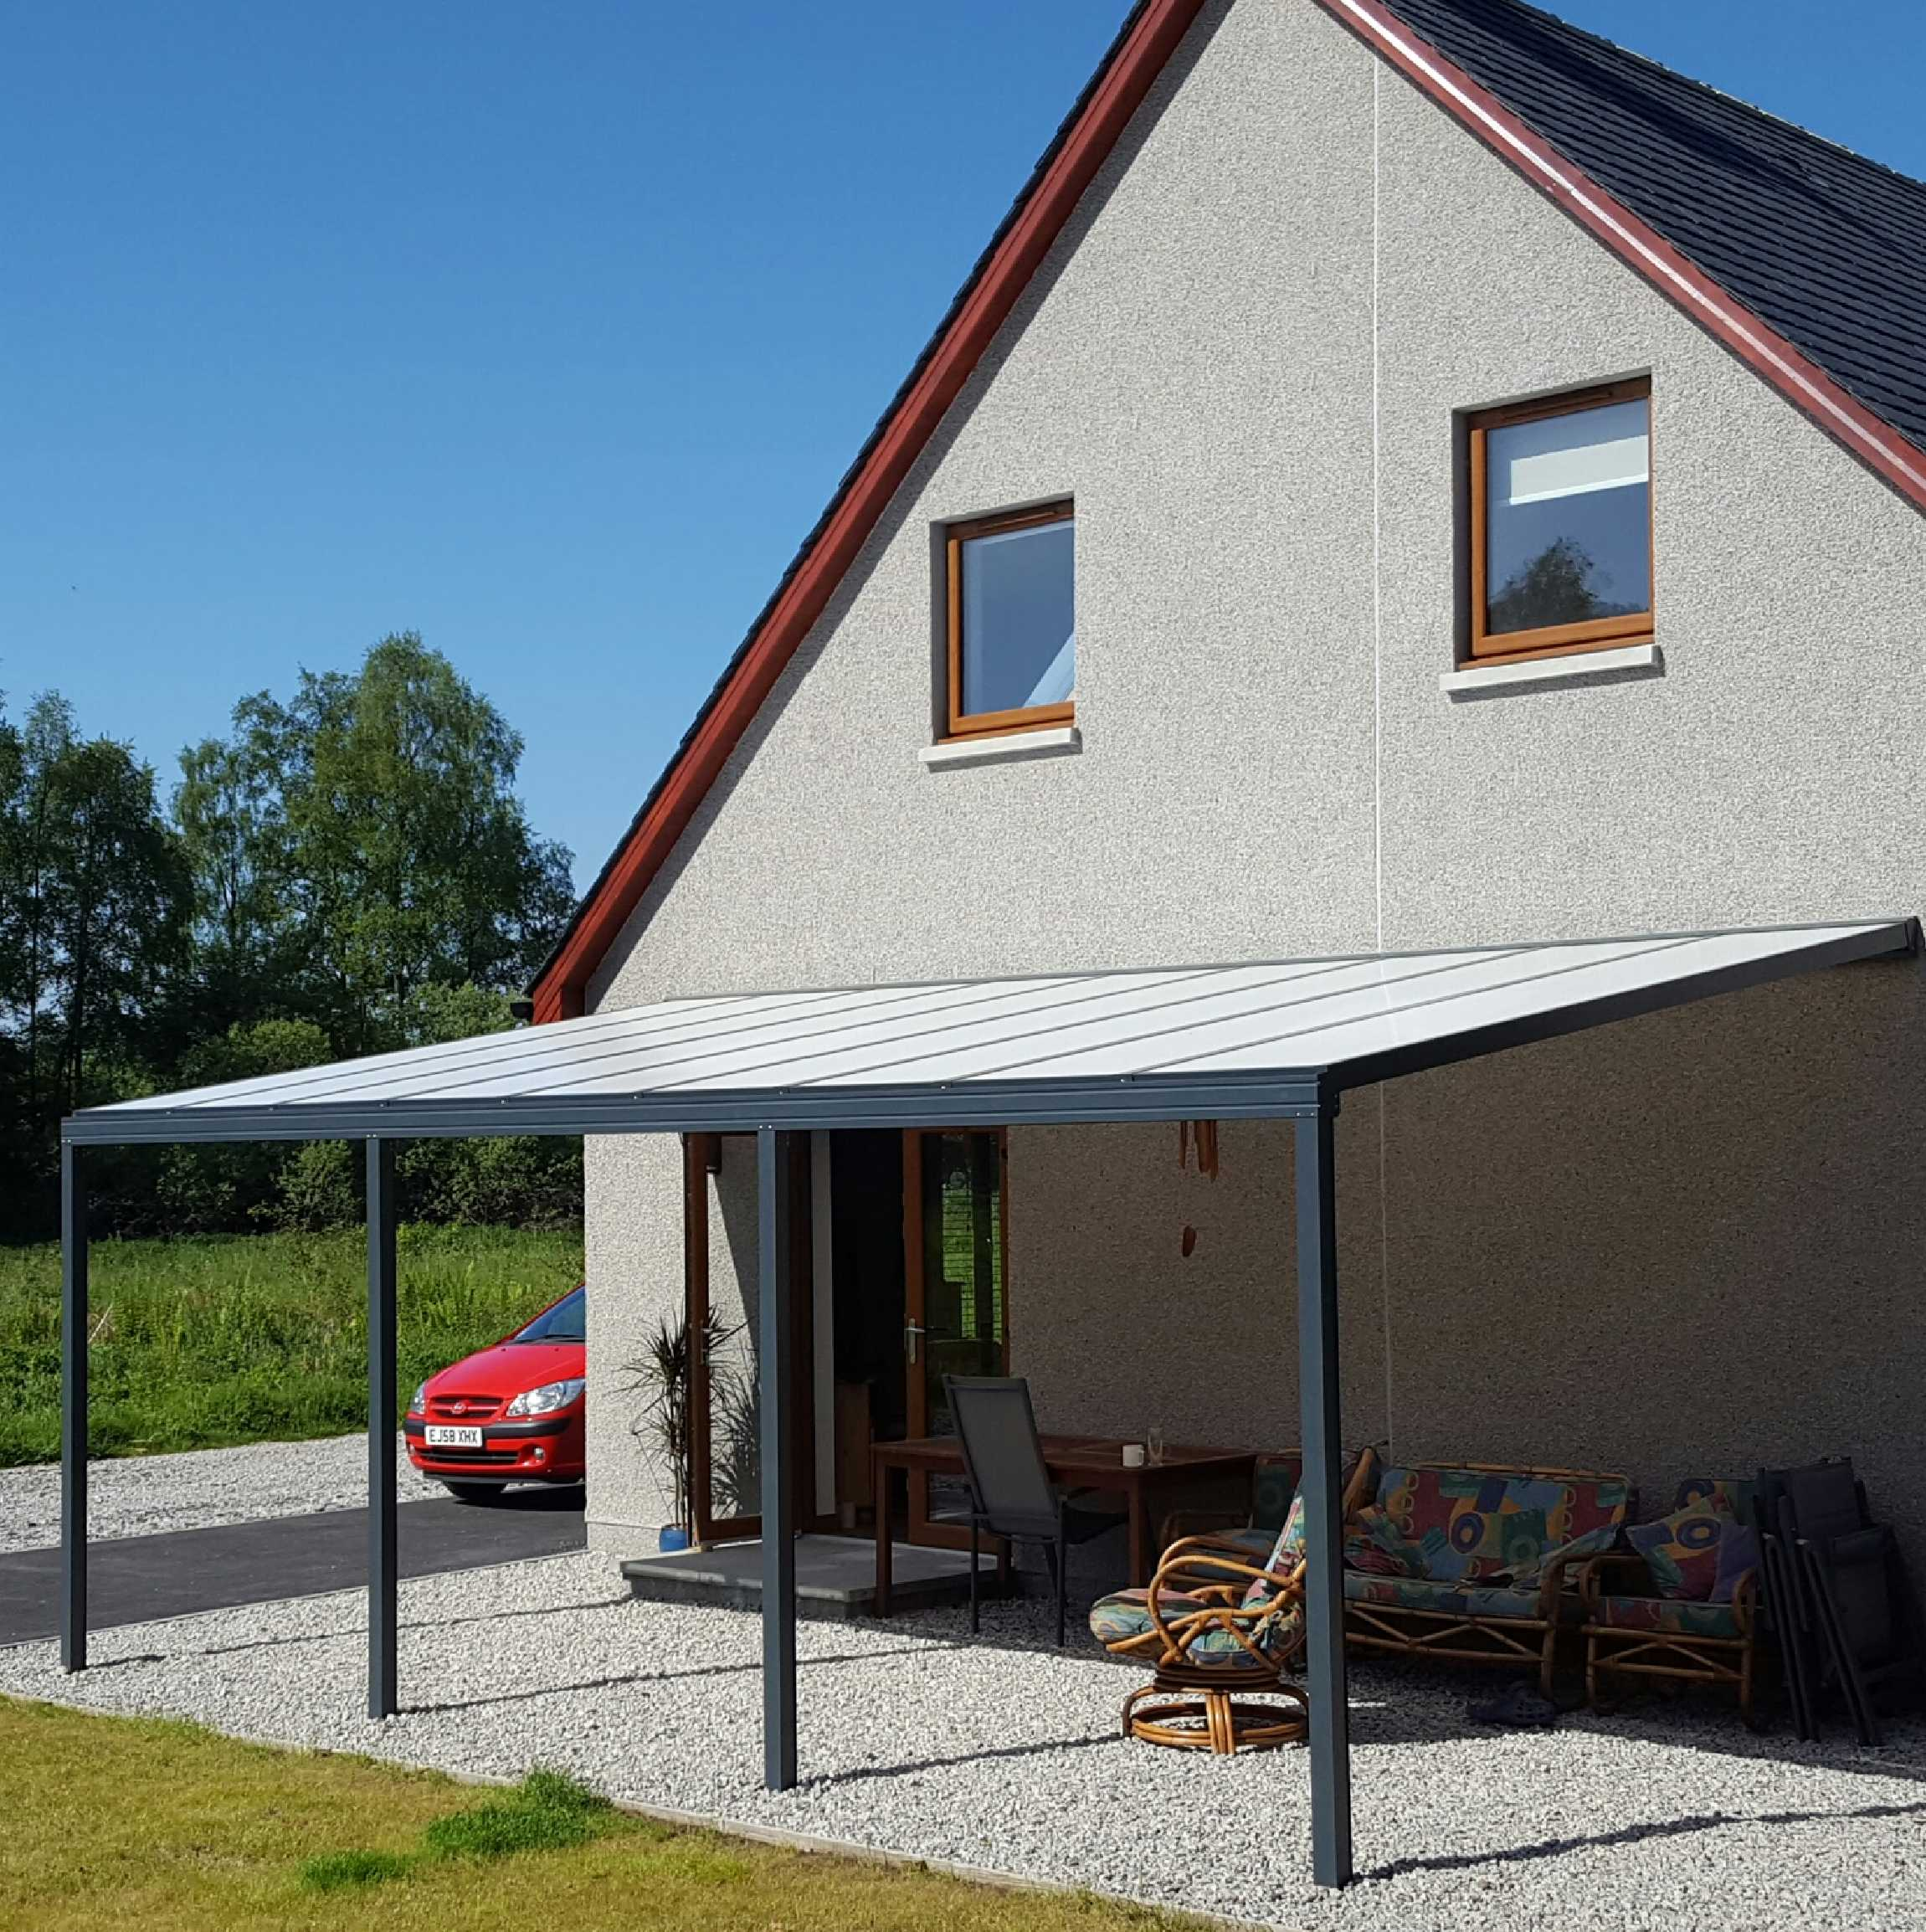 Great selection of Omega Smart Lean-To Canopy, Anthracite Grey, 16mm Polycarbonate Glazing - 4.2m (W) x 4.5m (P), (3) Supporting Posts